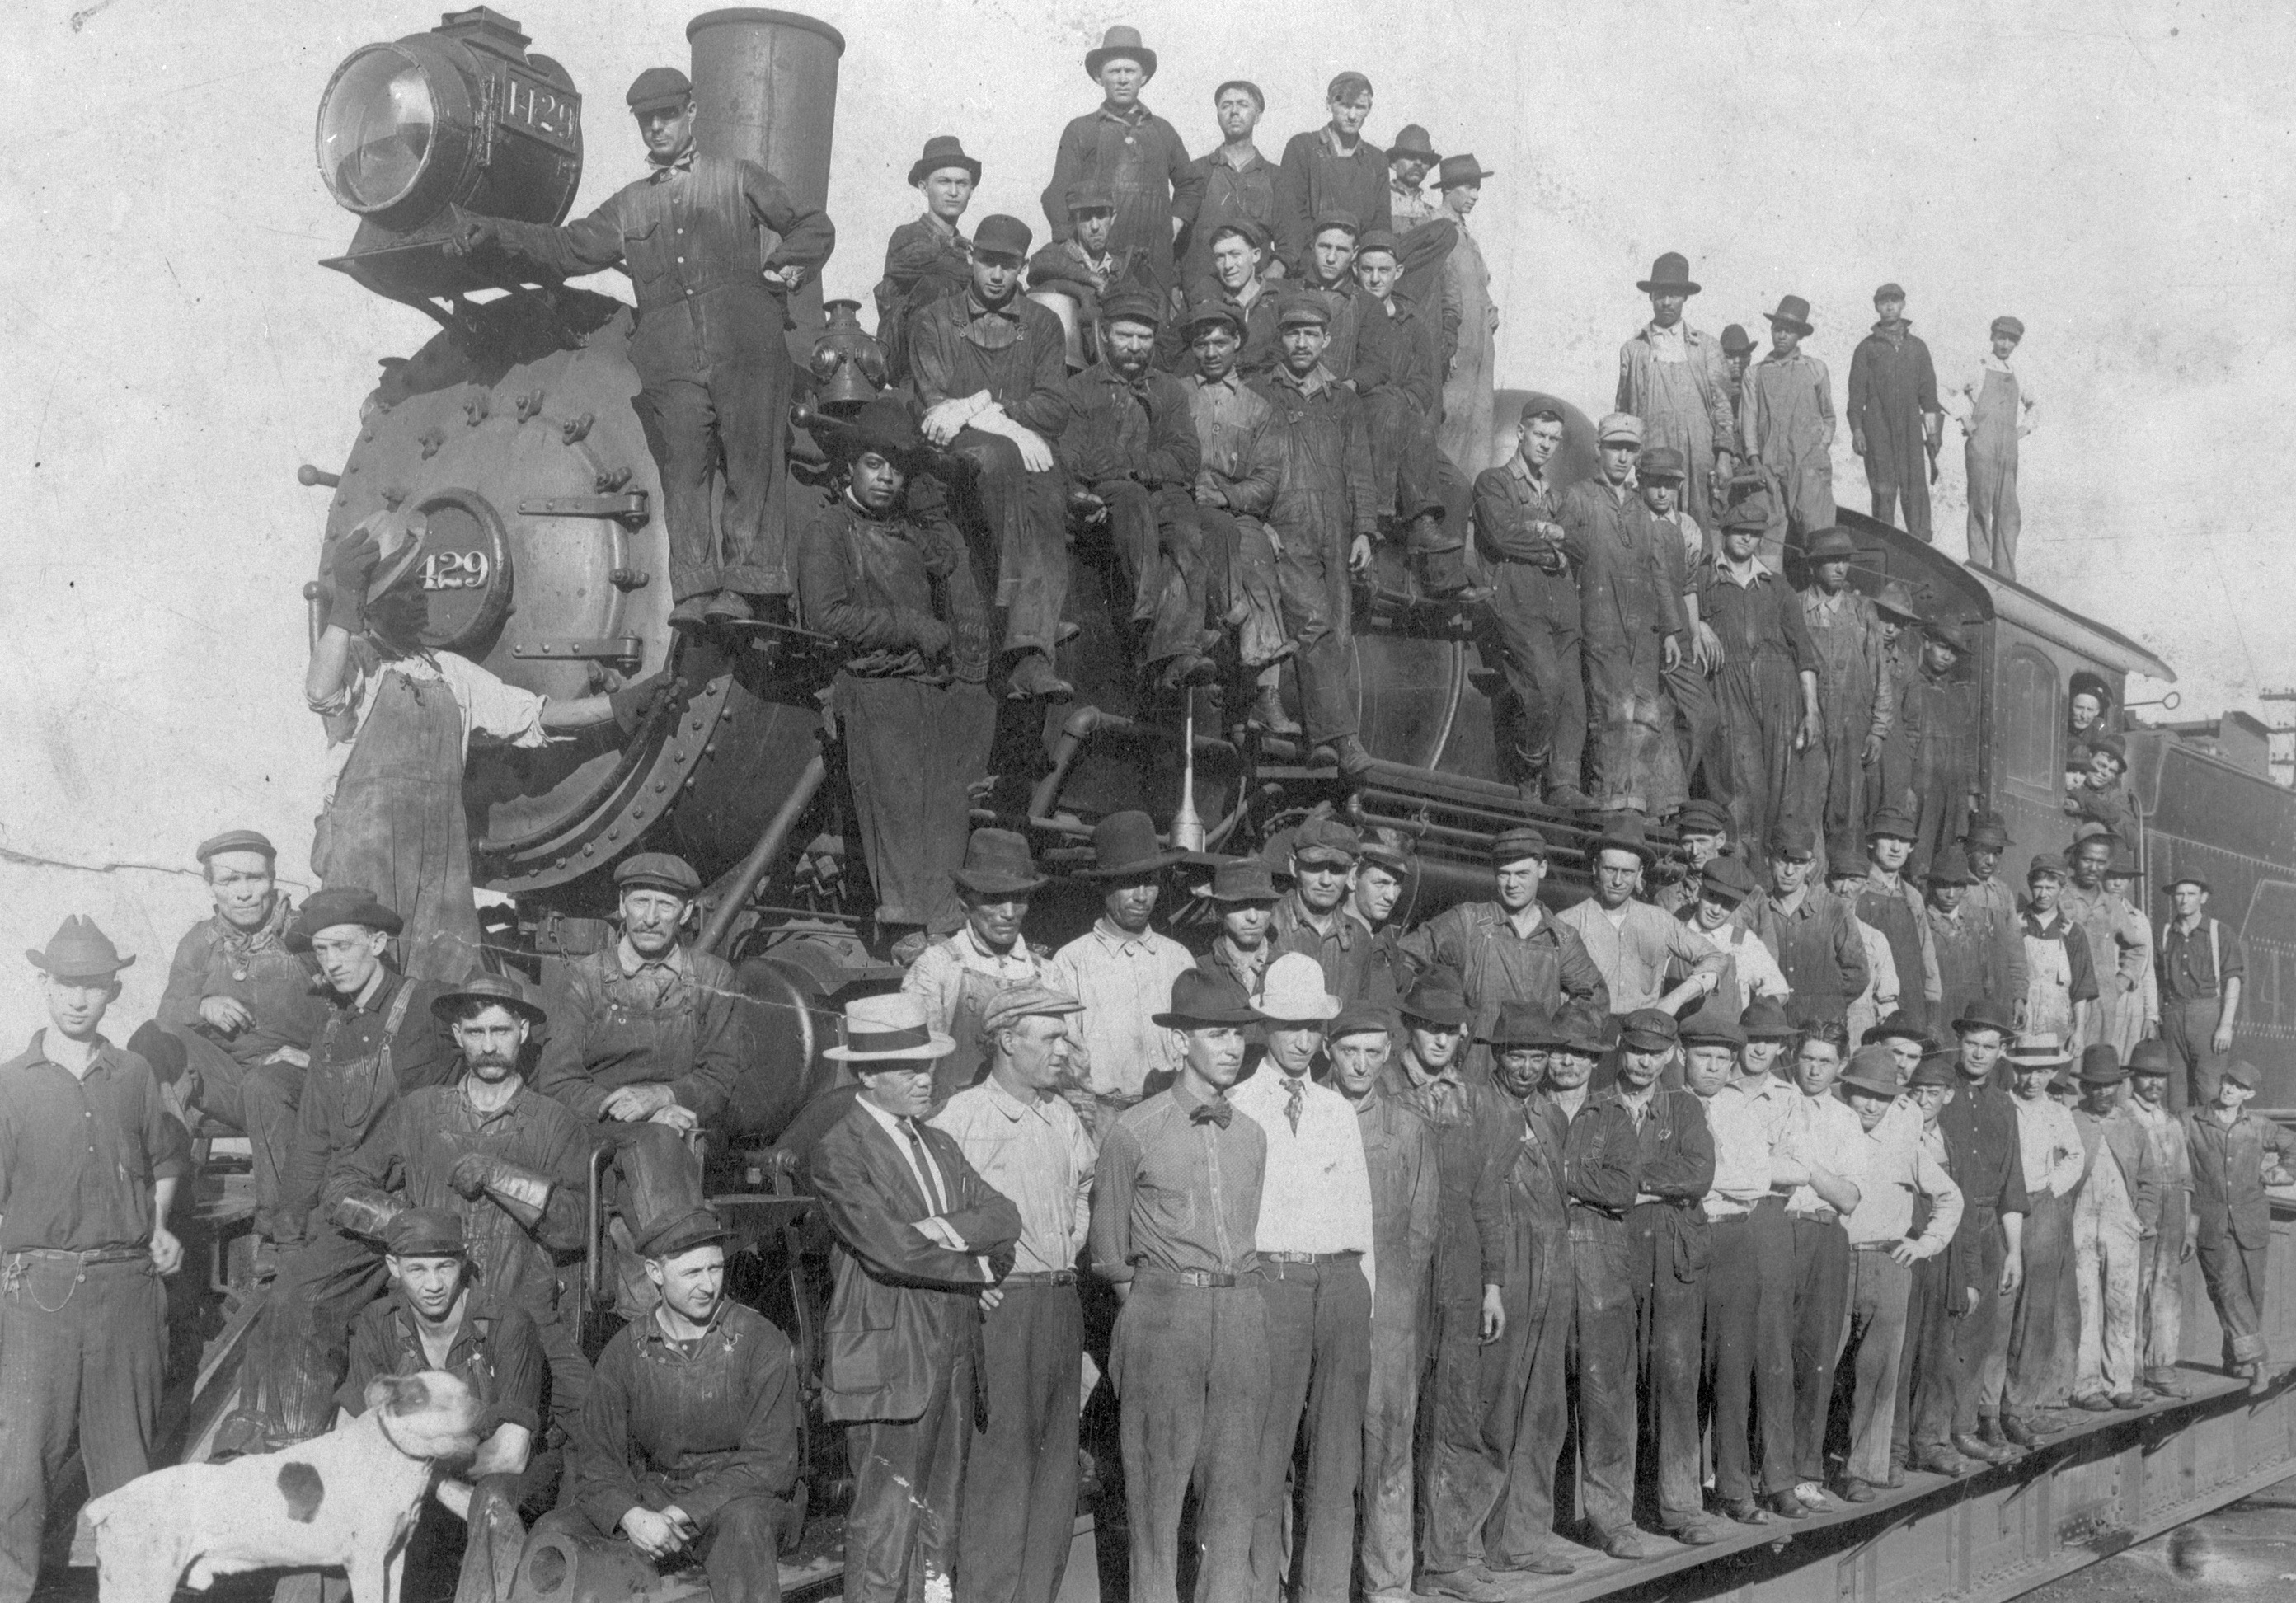 Dial-A-Speaker - Railroaded: The Industry that Shaped Kansas Event Image